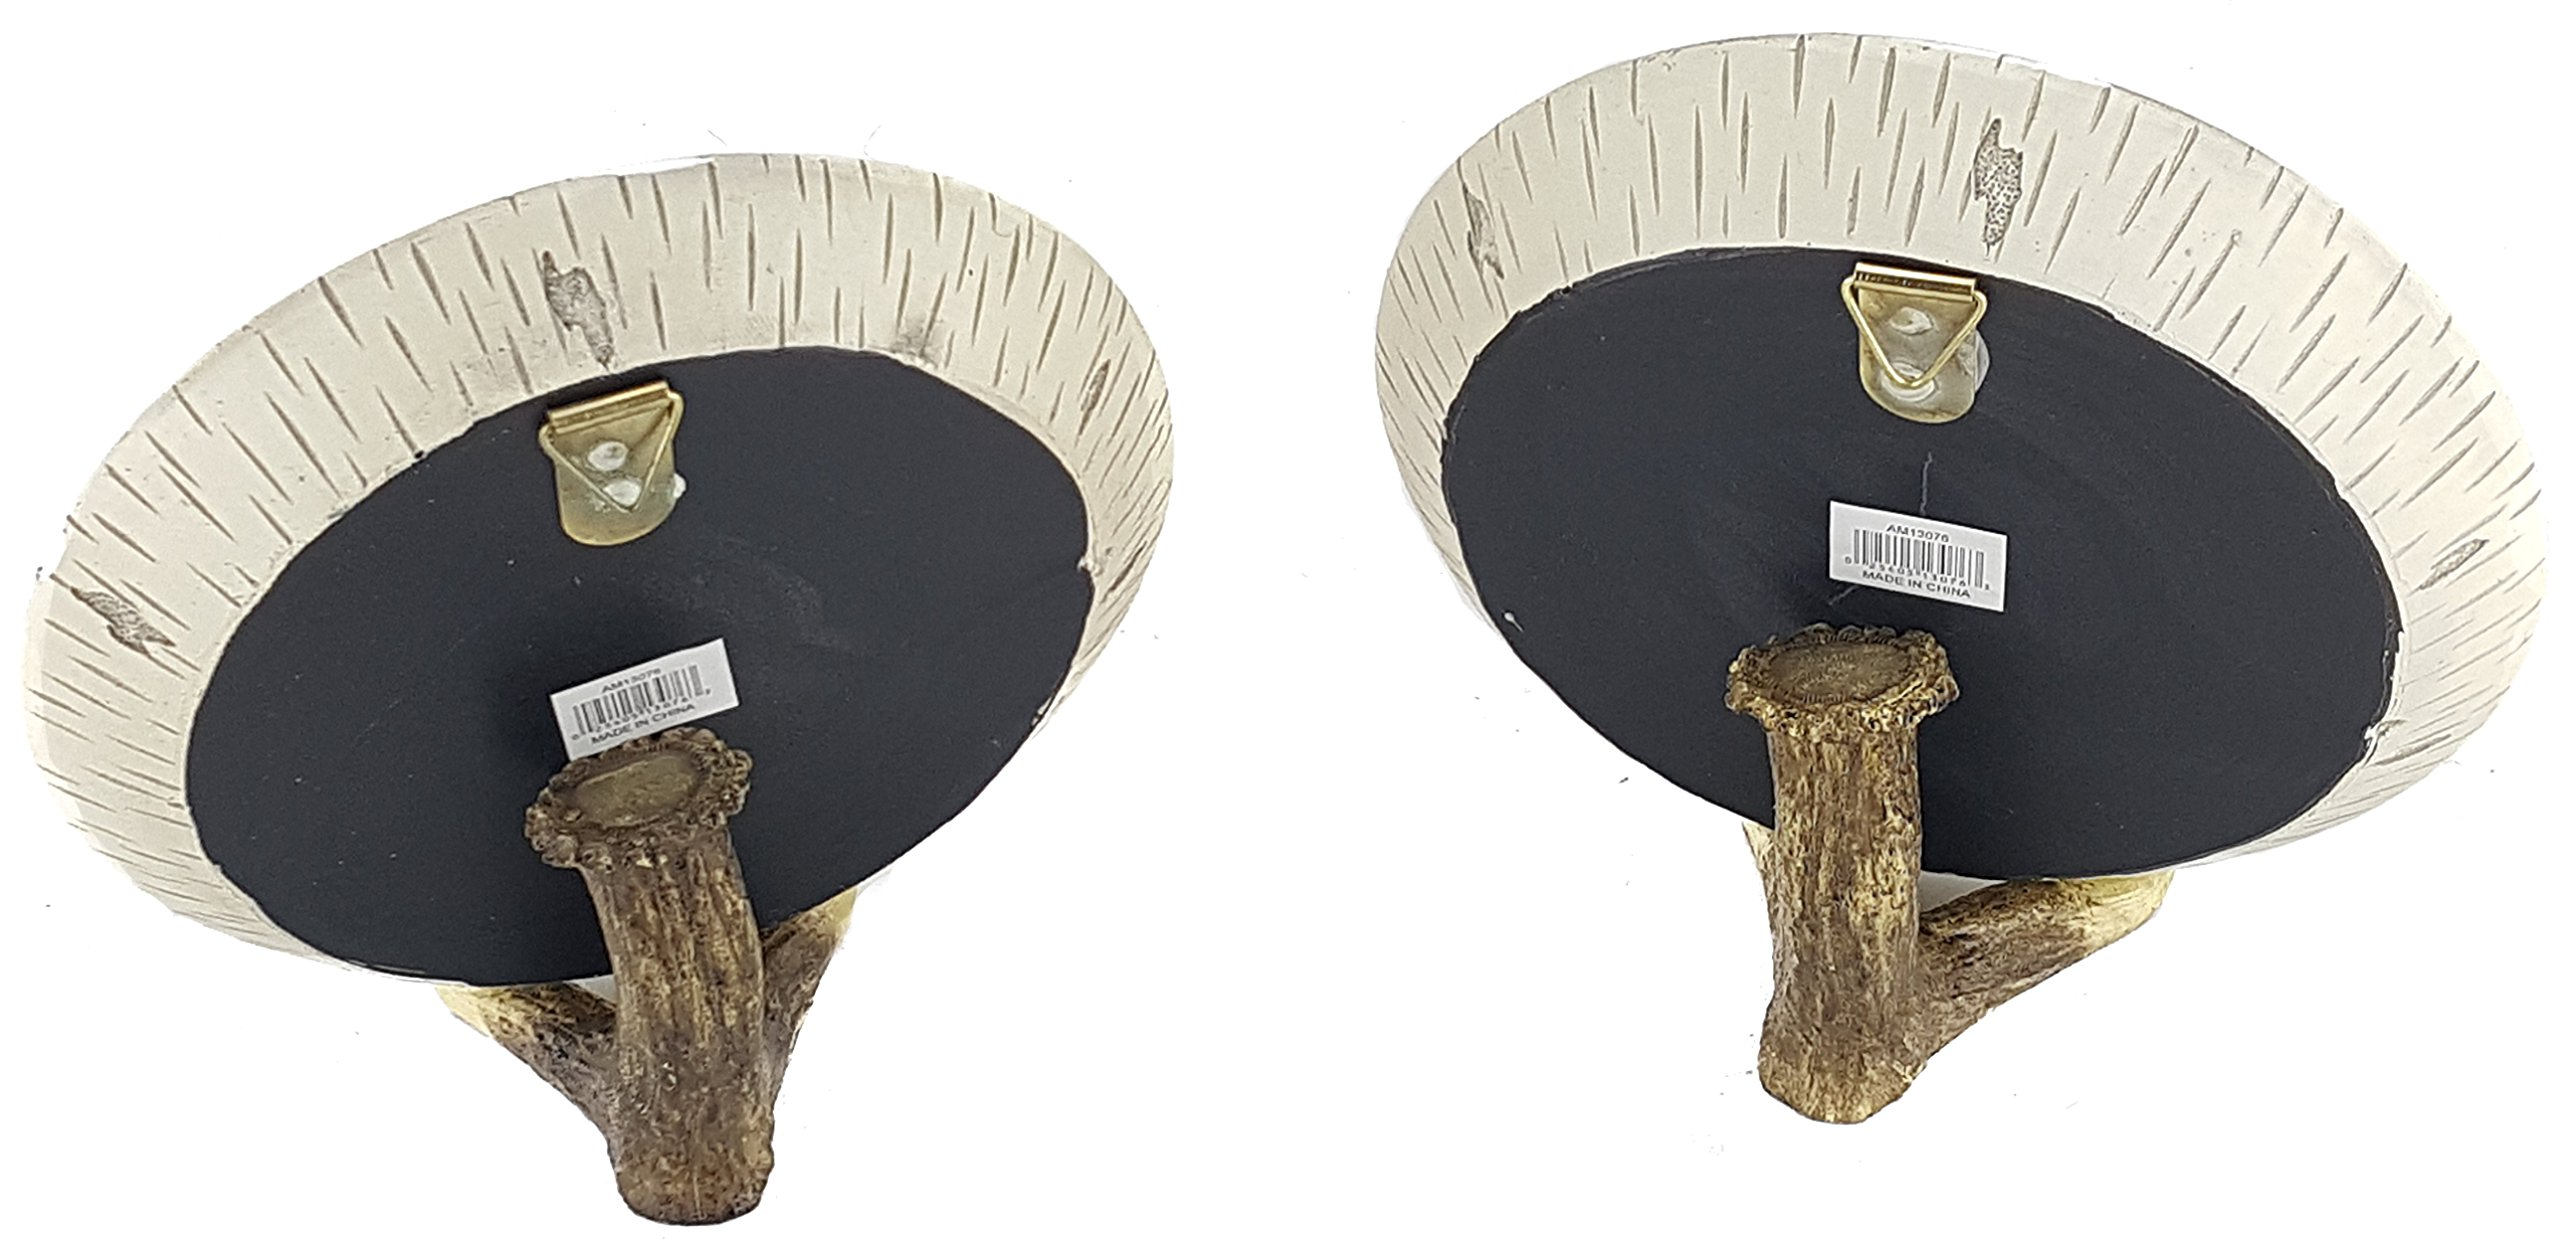 Trippies Pair of Wood Look BEAR Decorative Plates w/Stands Sculpture/Statue by Trippies (Image #2)